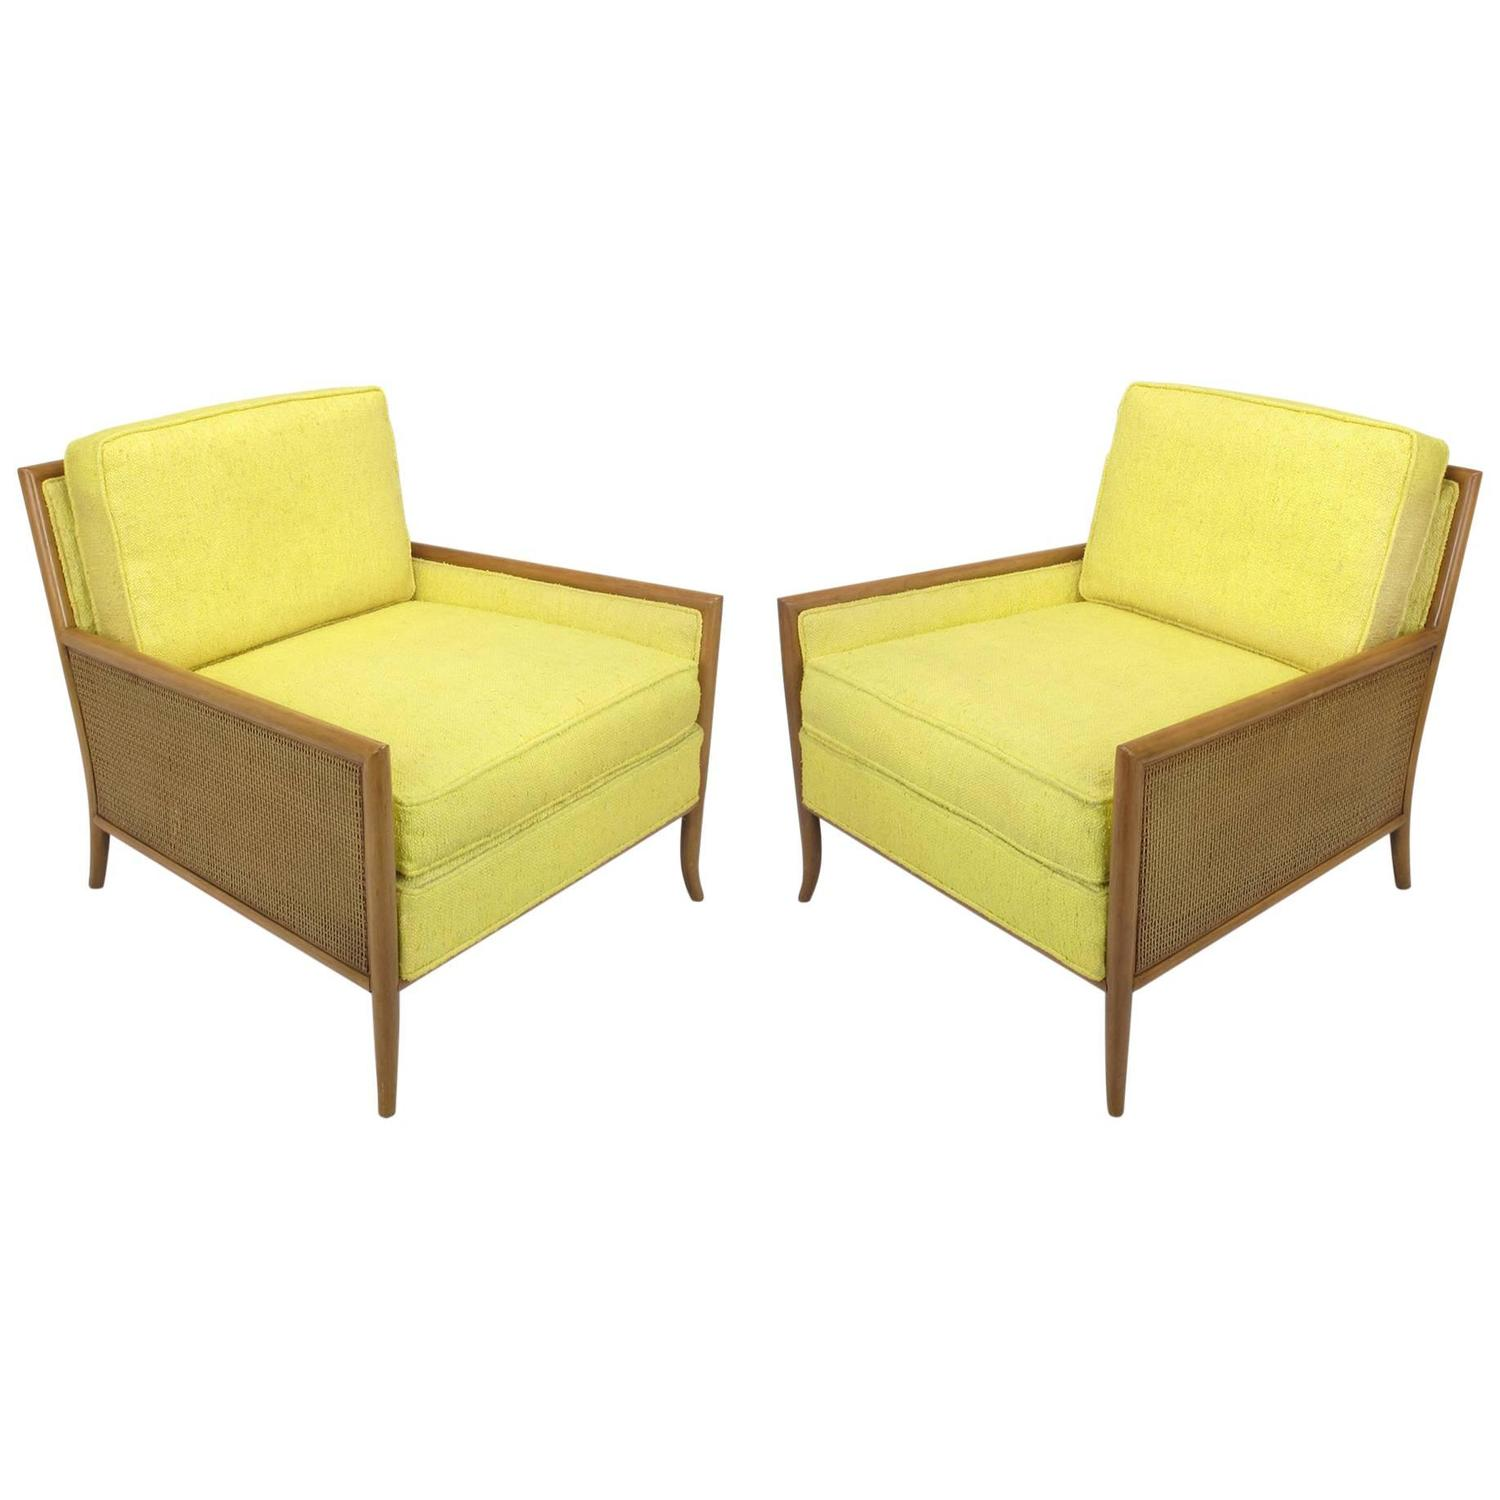 yellow club chair lounge outdoor chairs pair of walnut and haitian cotton